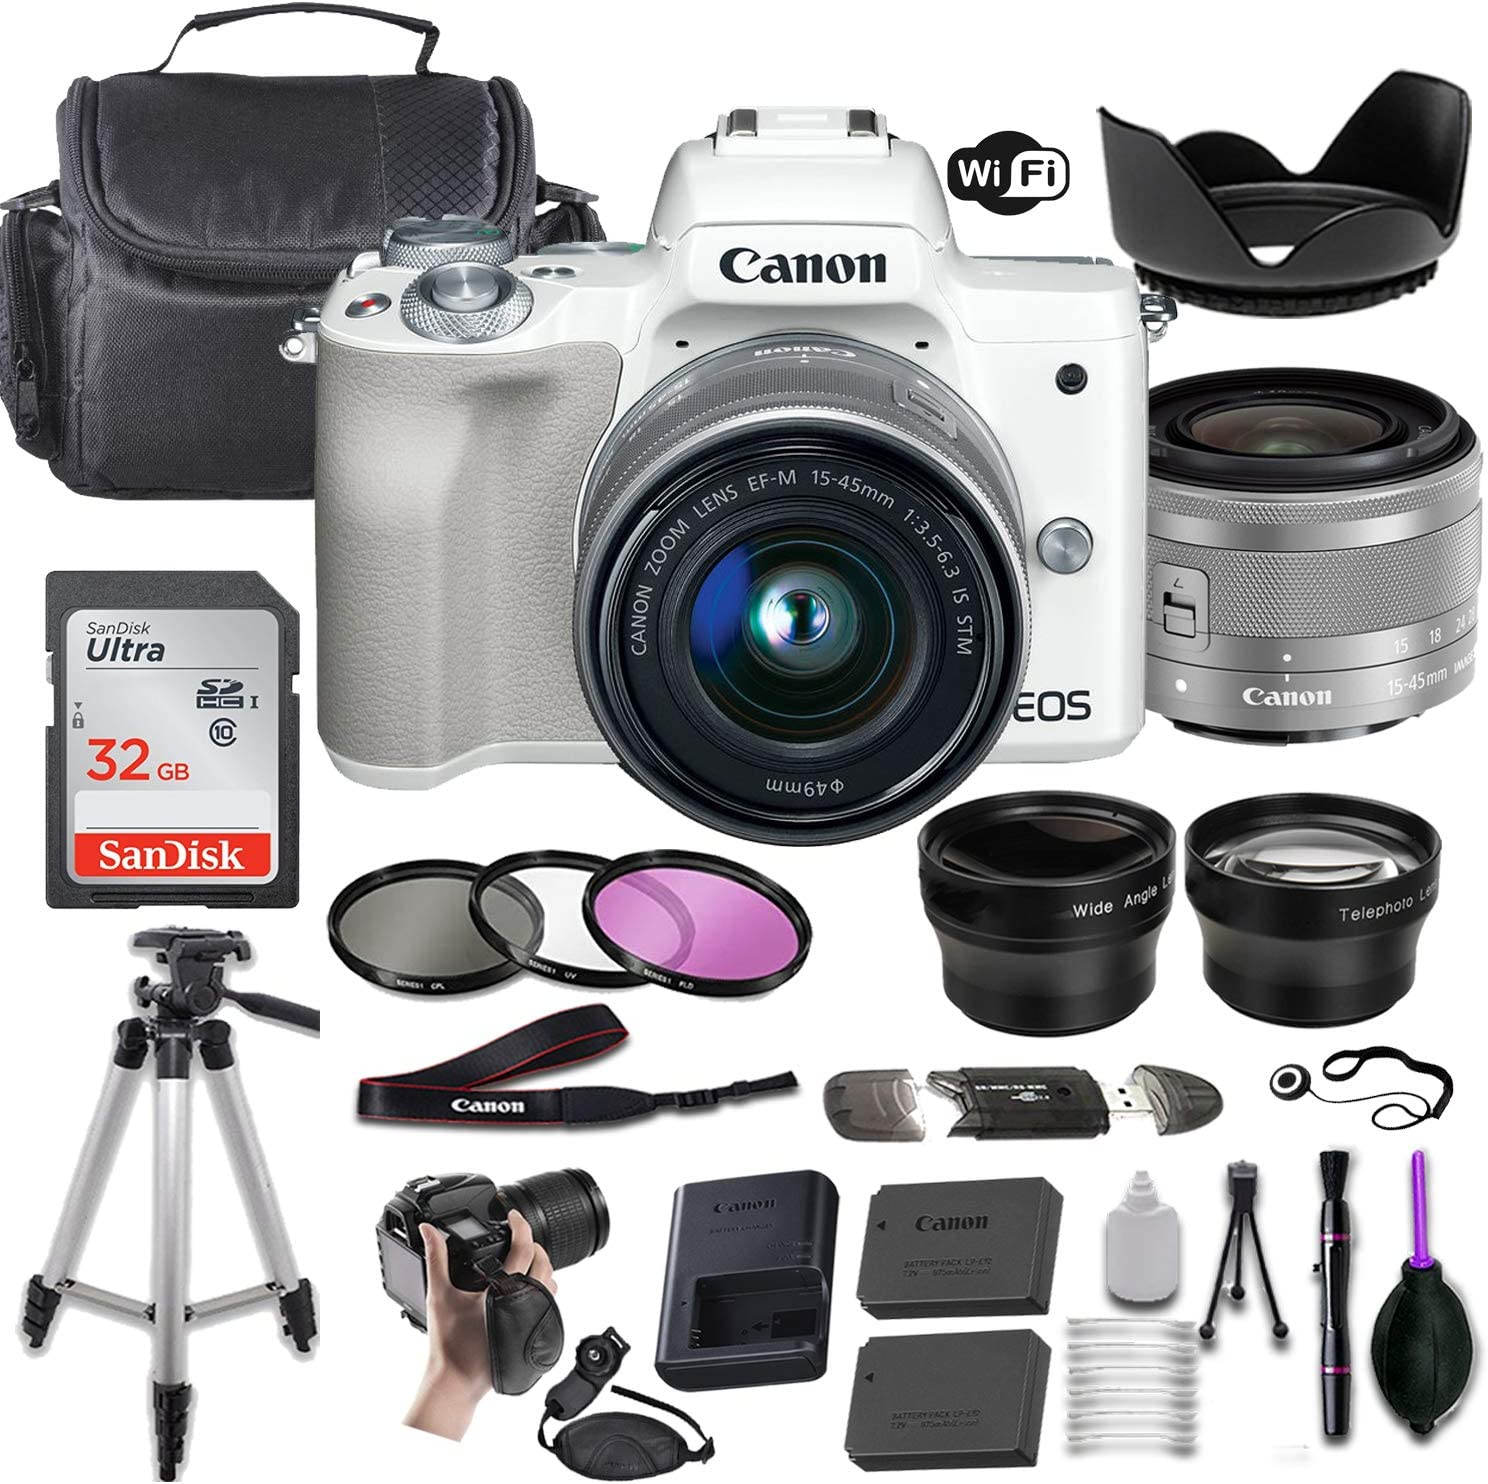 Canon EOS M50 Mirrorless Digital Gifts Popular brand in the world Camera f 15-45mm EF-M White w